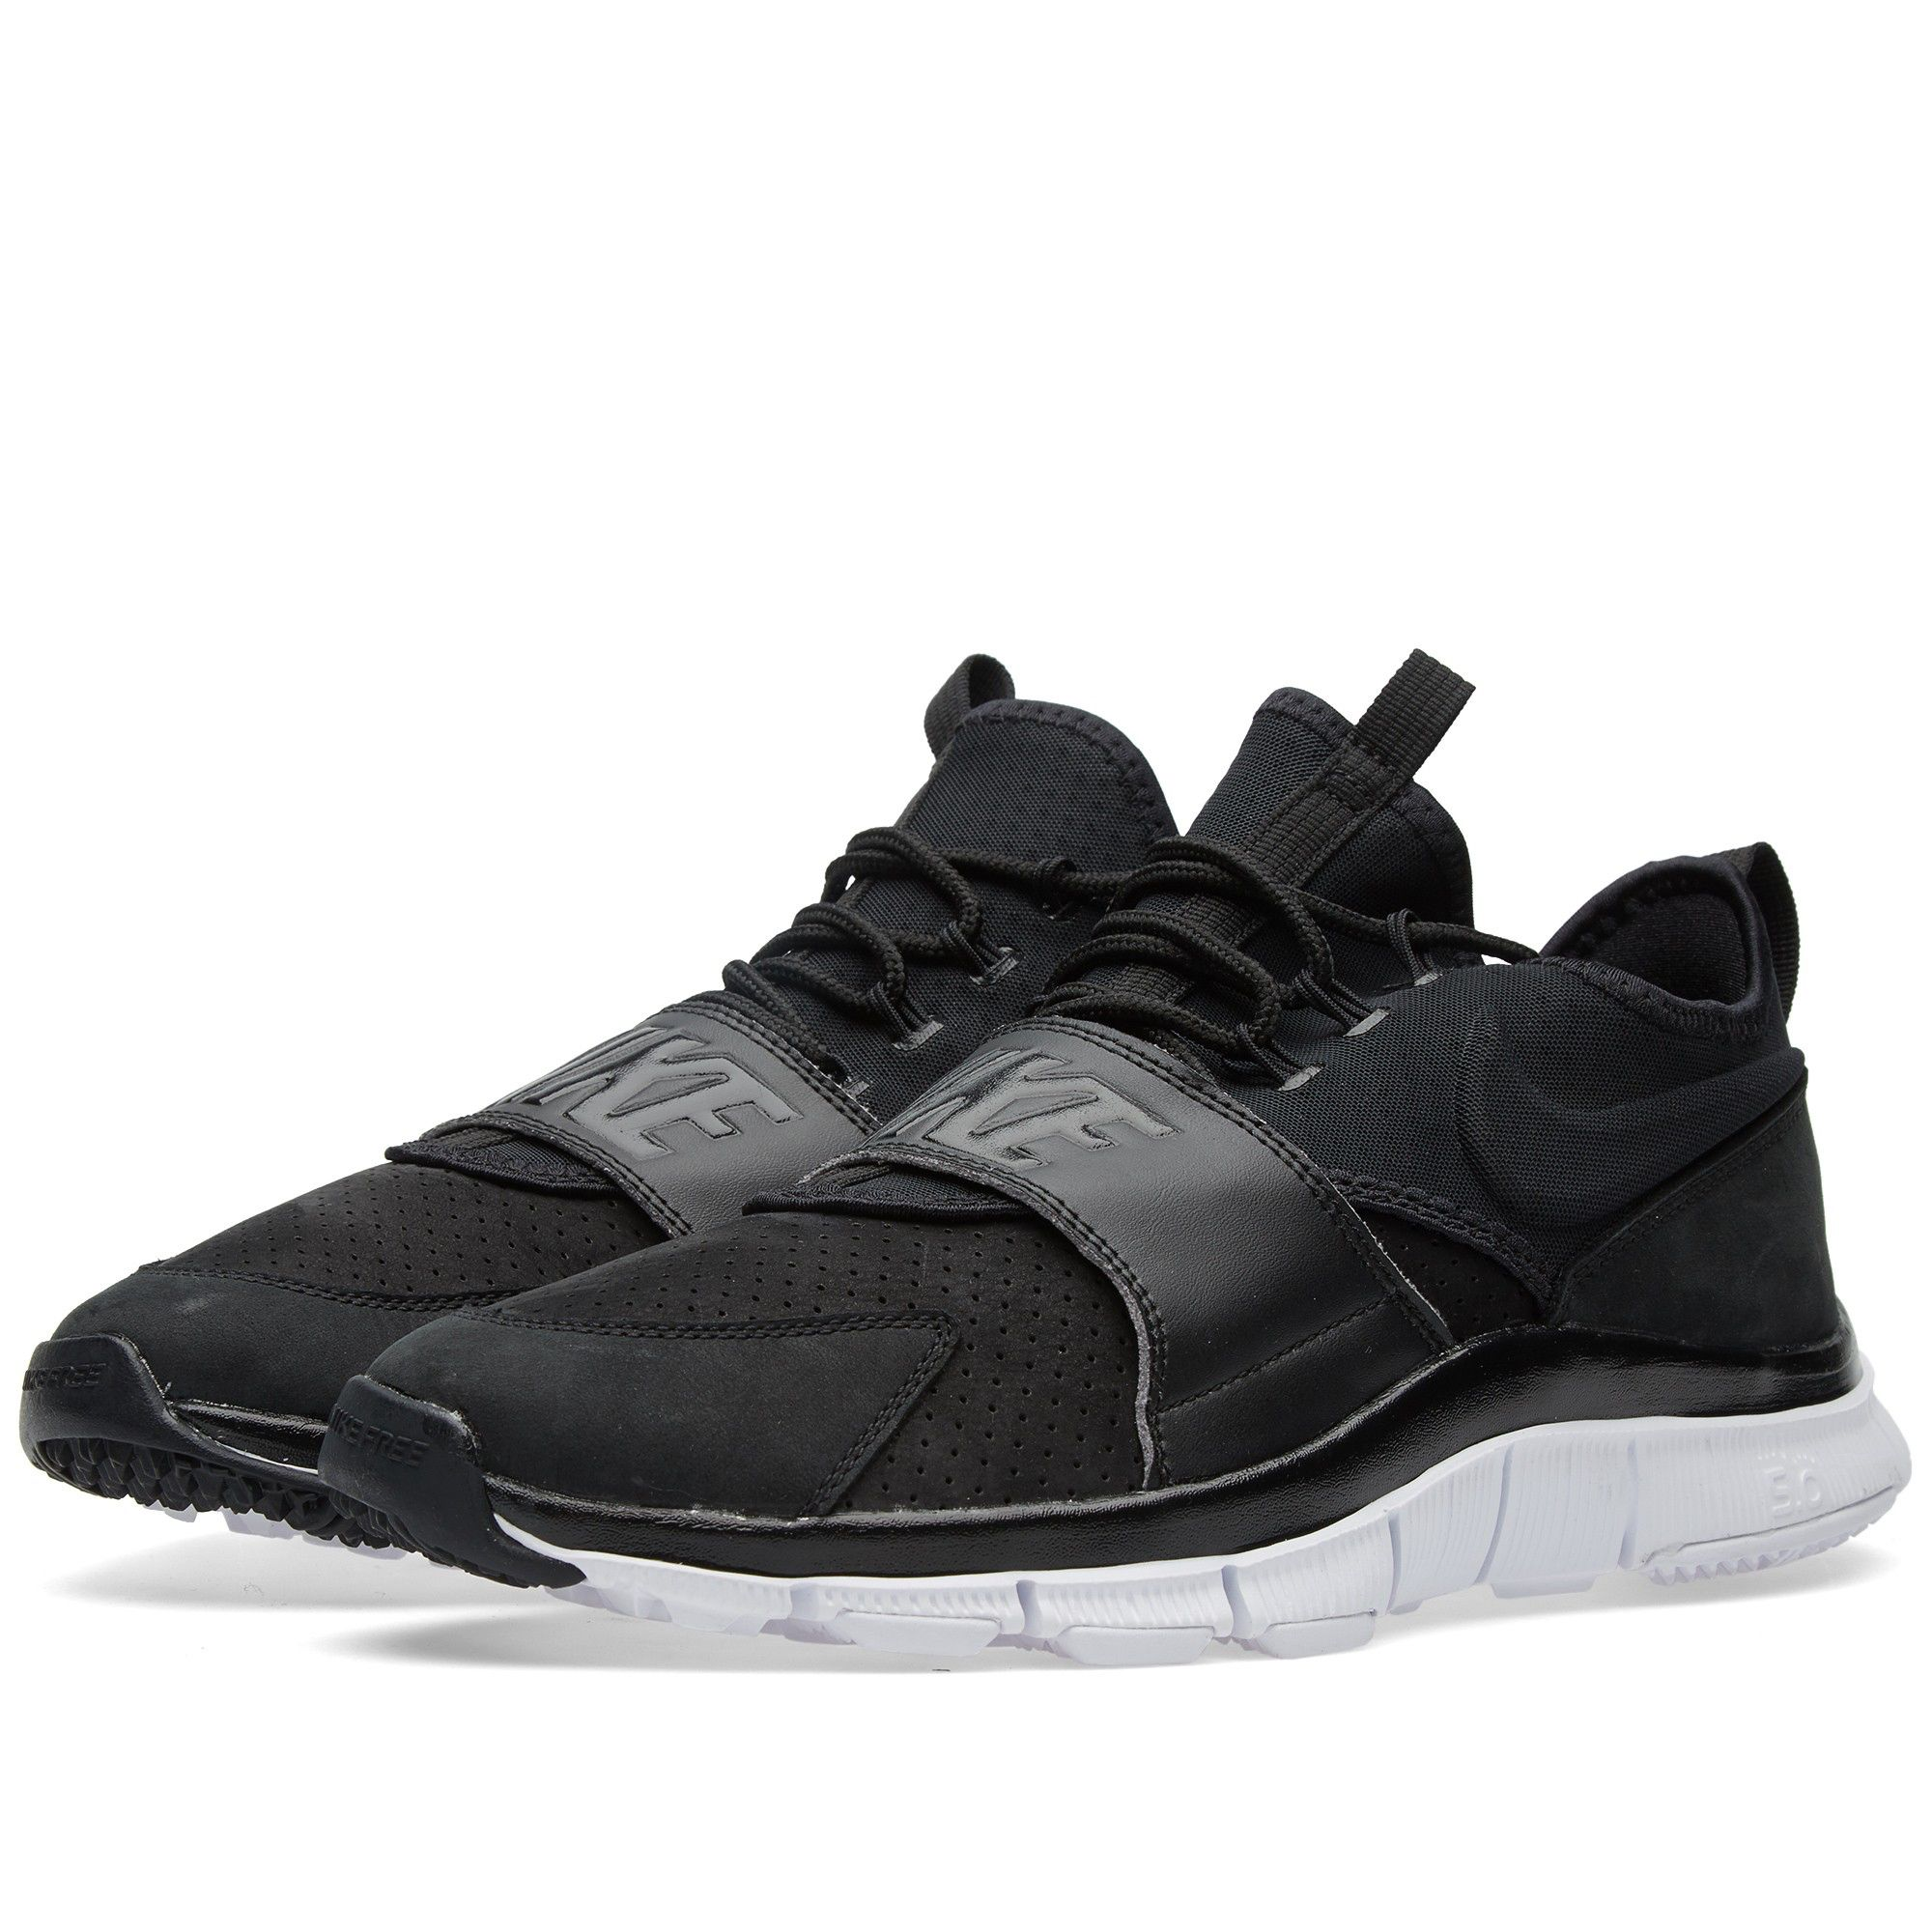 hot sale online 46370 89e6b Explore Nike Free, Trainers, and more!